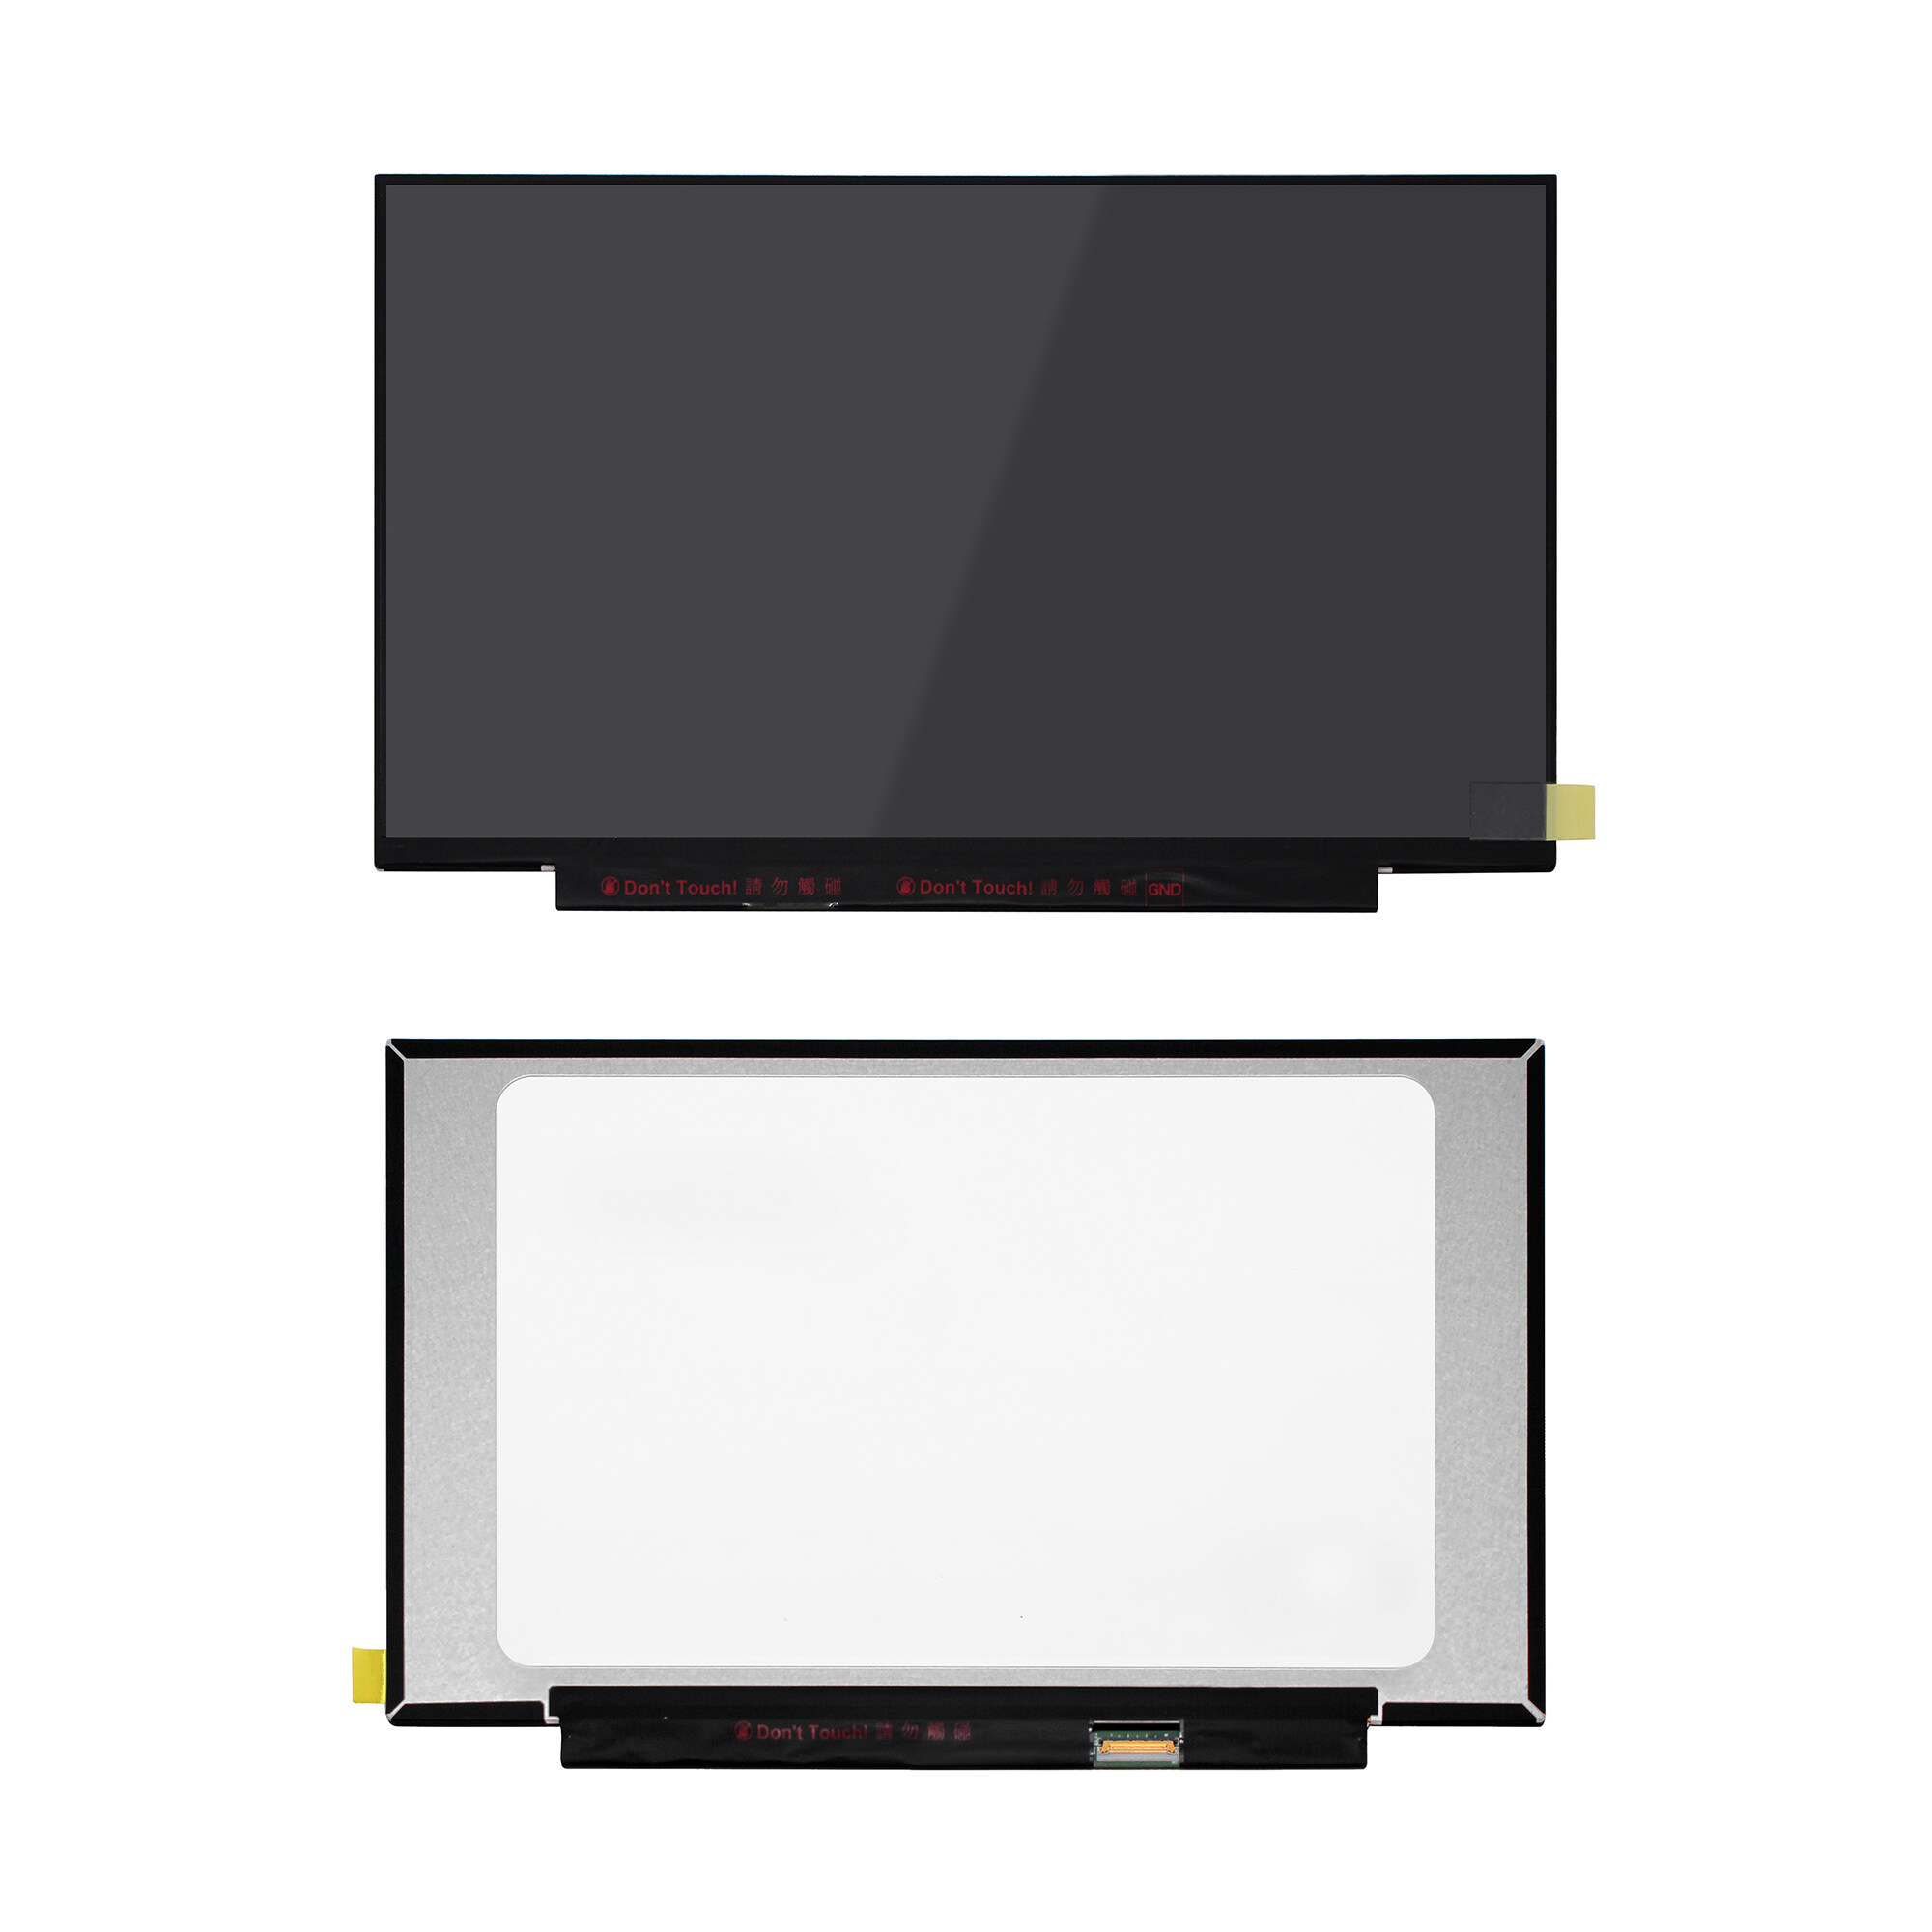 14 fhd led screen lcd display panel b140han04 1 1920x1080. Black Bedroom Furniture Sets. Home Design Ideas